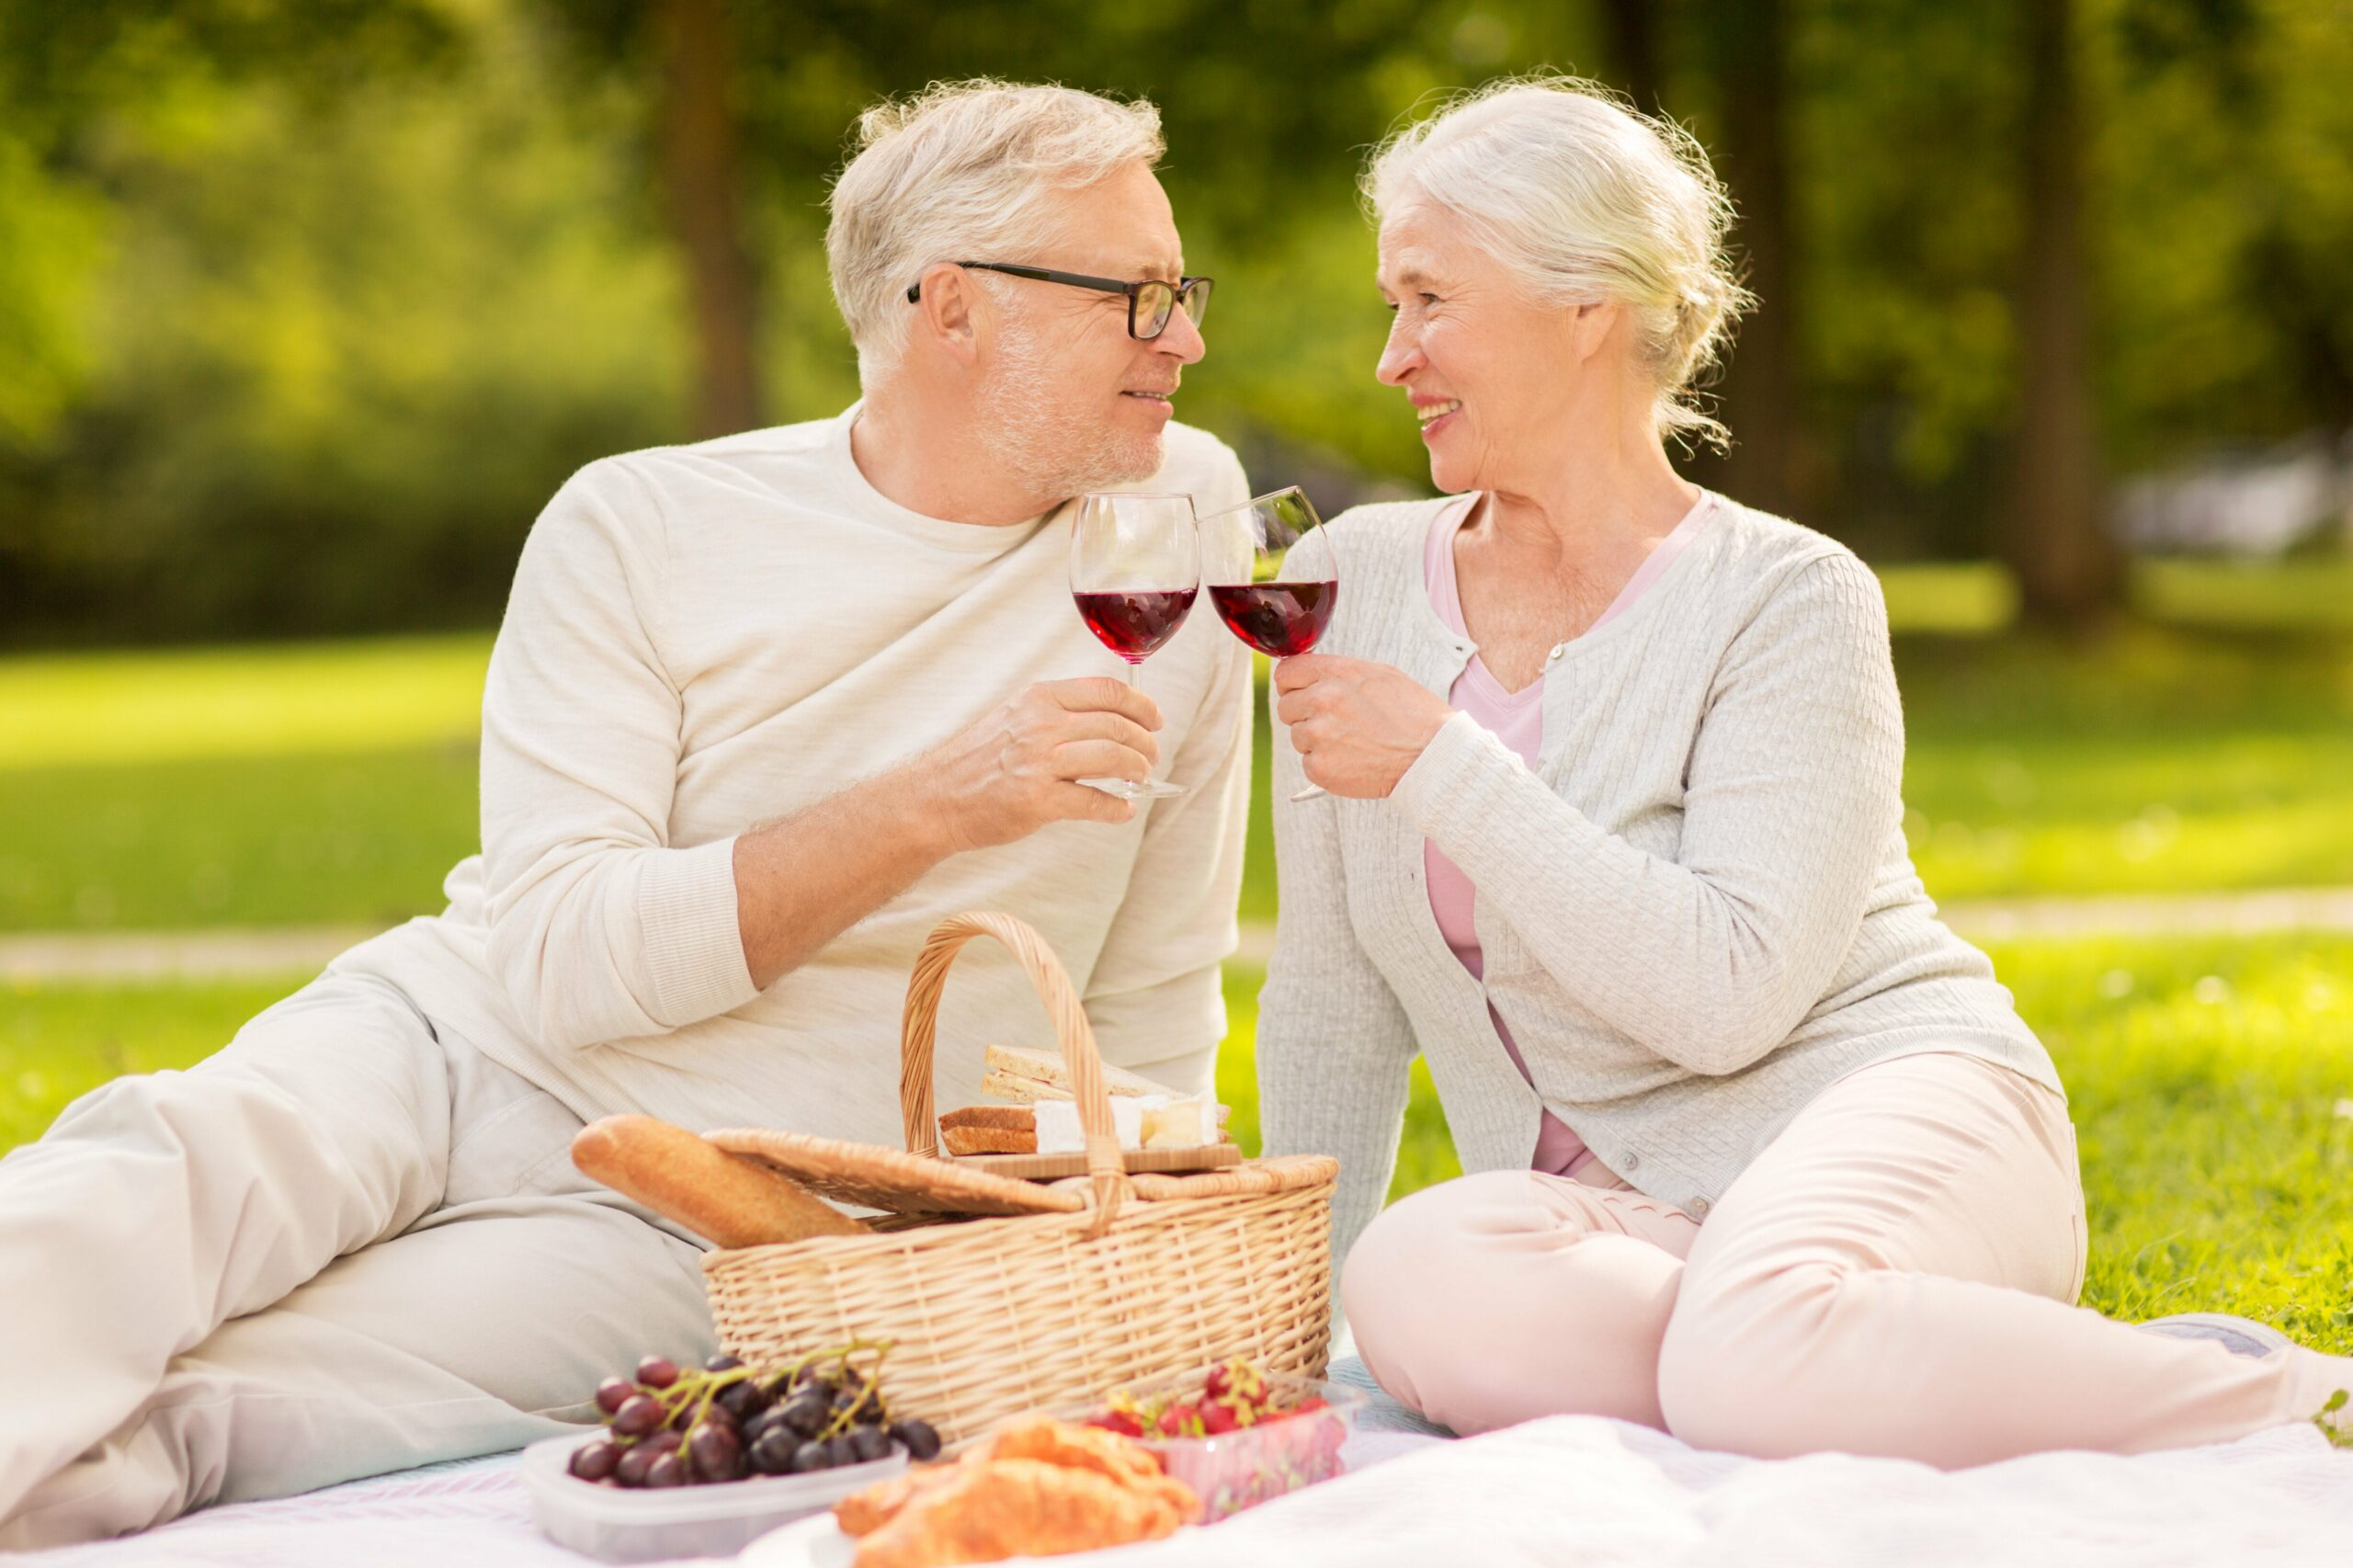 Your Guide To Finding Your Soulmate During Your Golden Years!